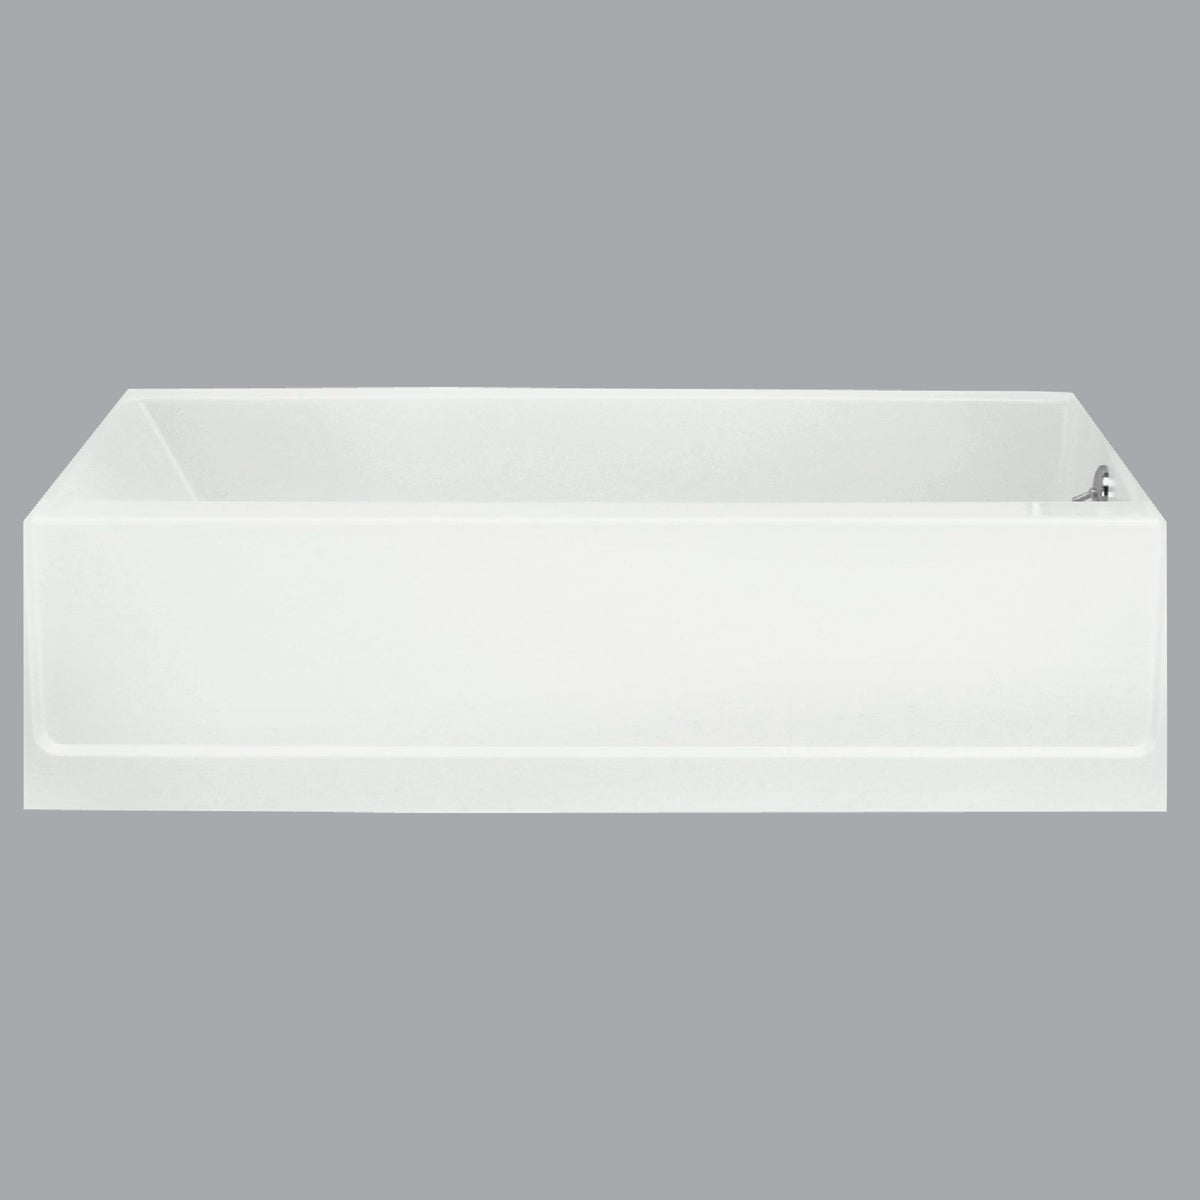 WHT ADVANTAGE RH TUB - 61031120-0 by Sterling Pbg/vikrell